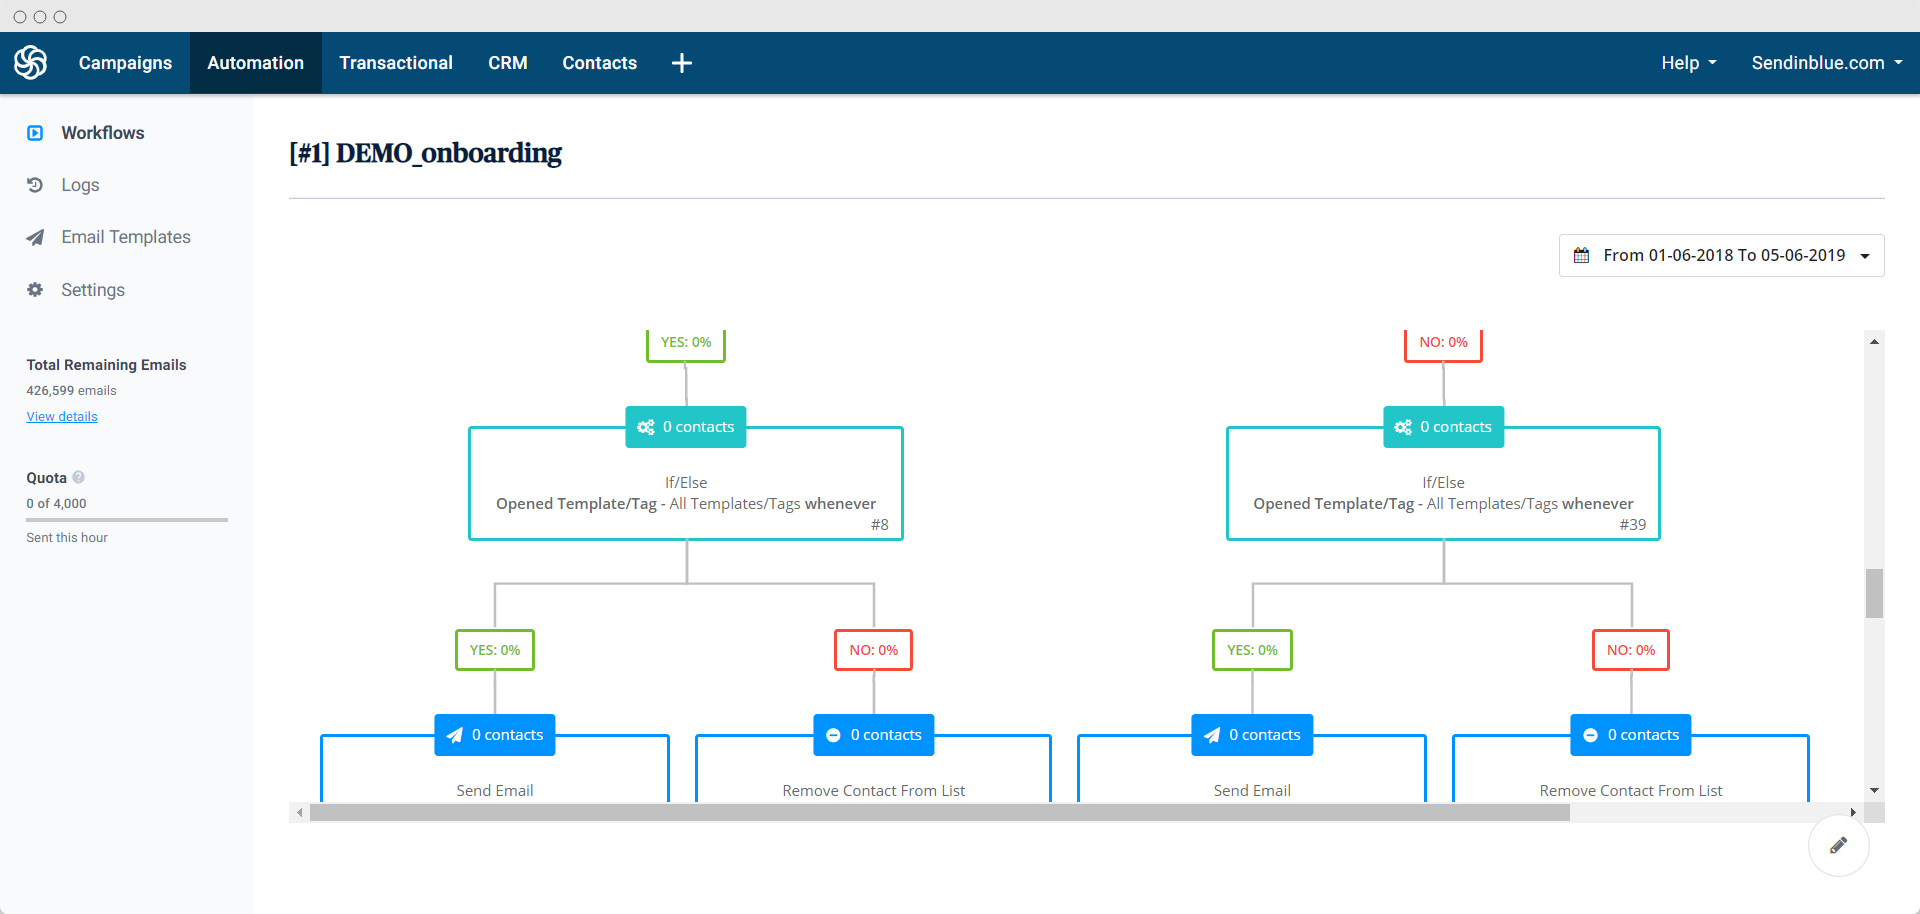 Sendinblue Automation Workflow